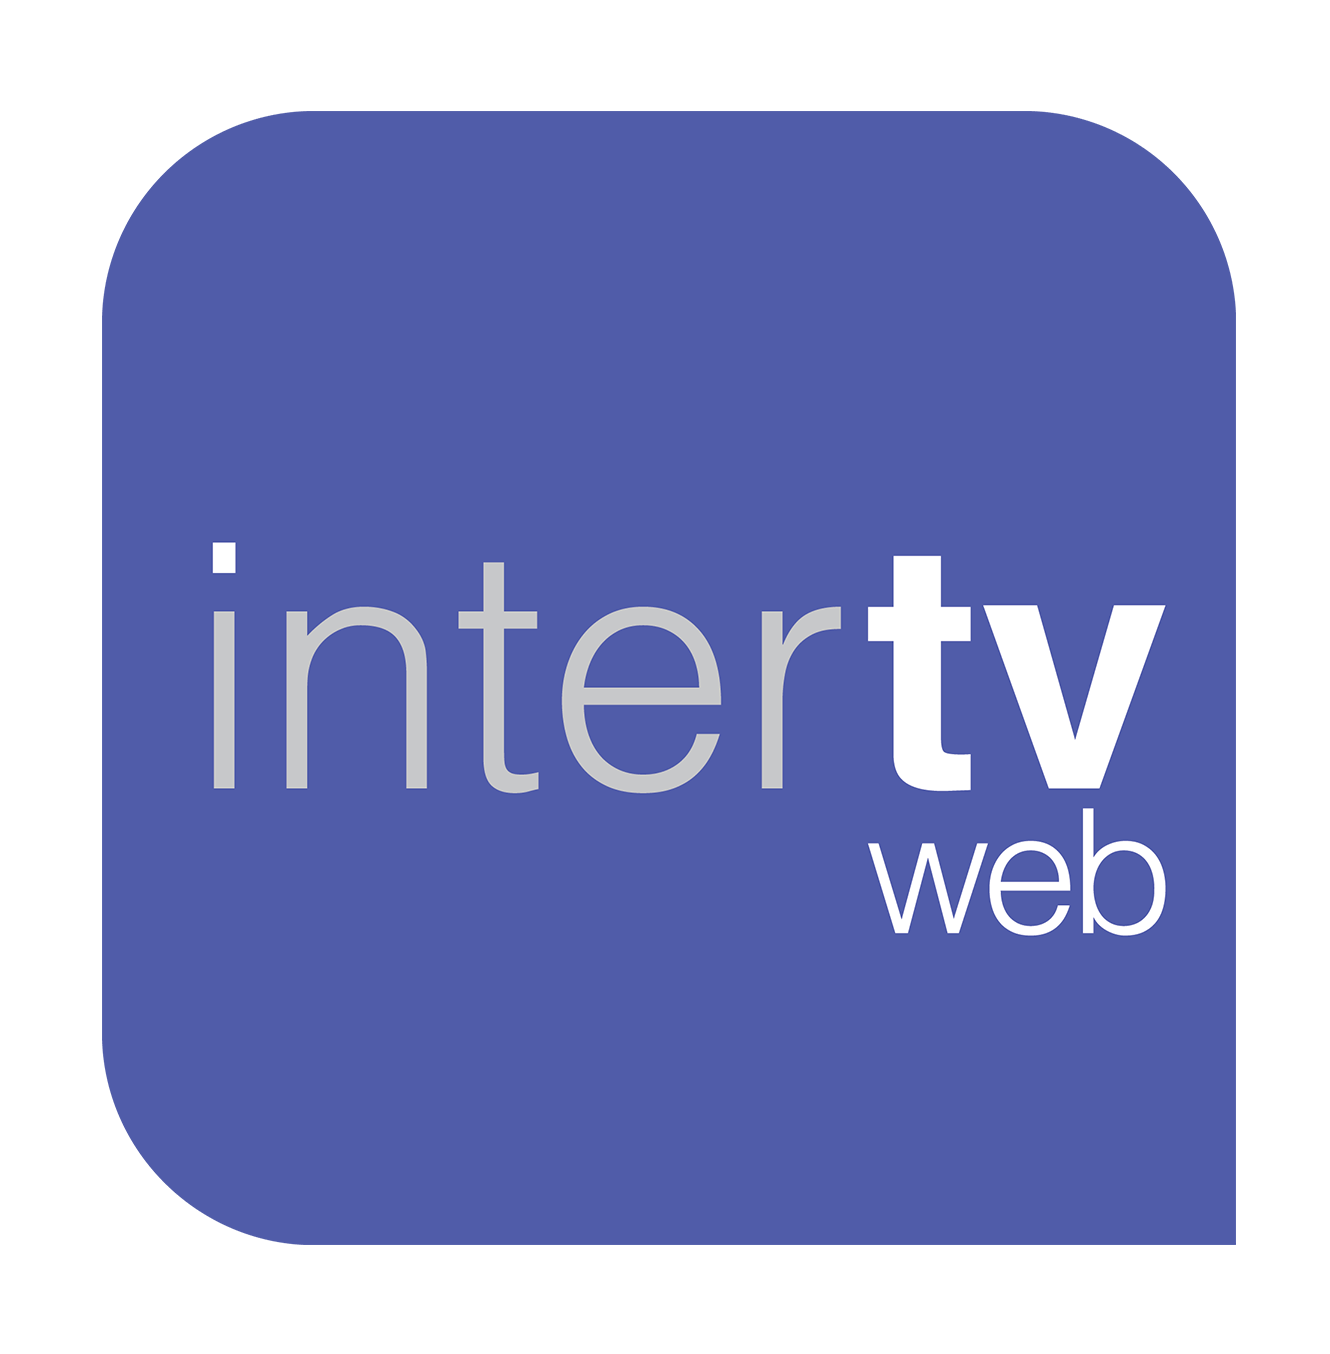 InterTV Web